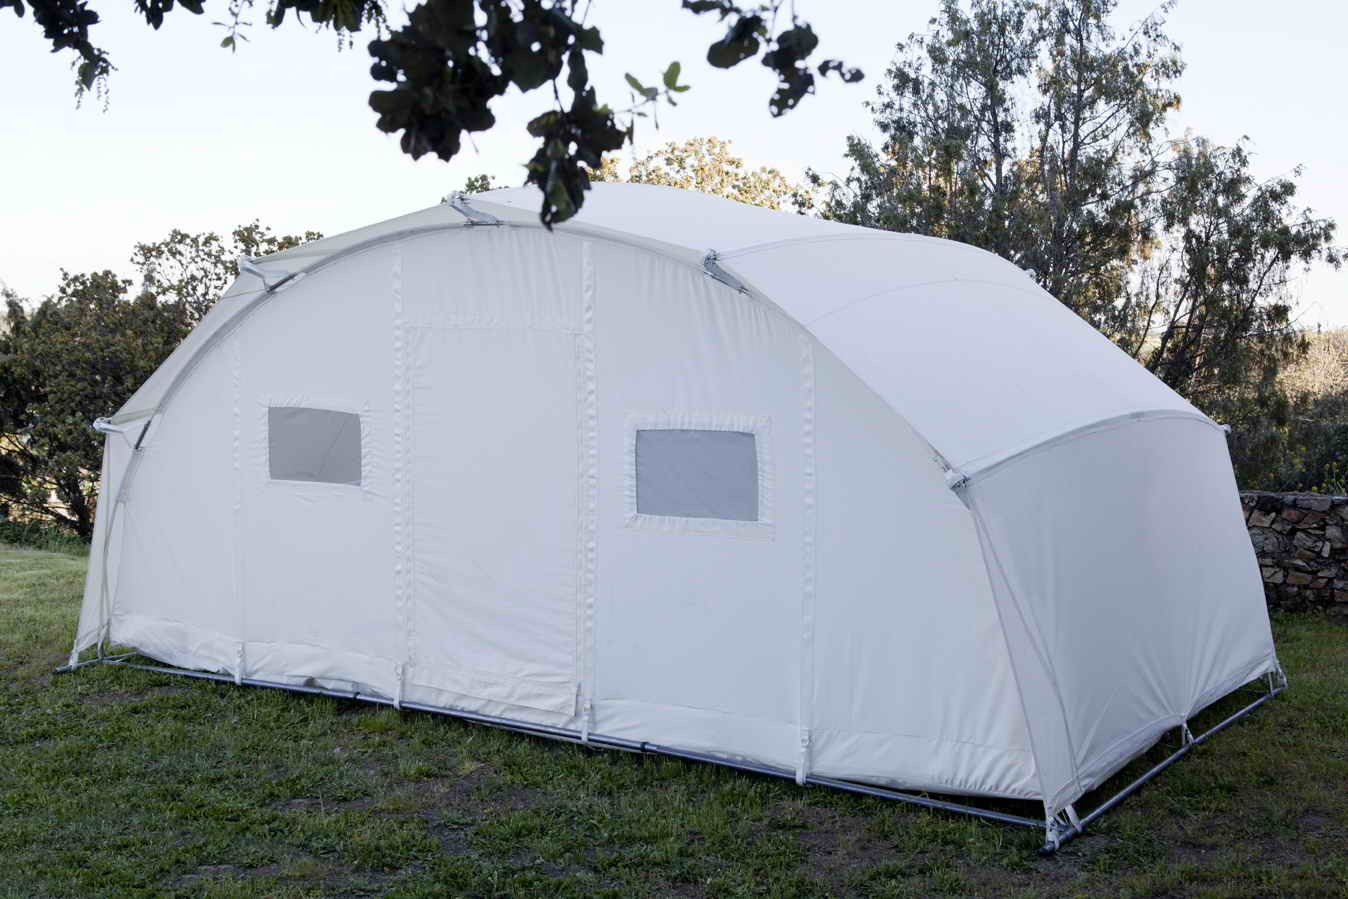 Thermally isolated tent Ctents